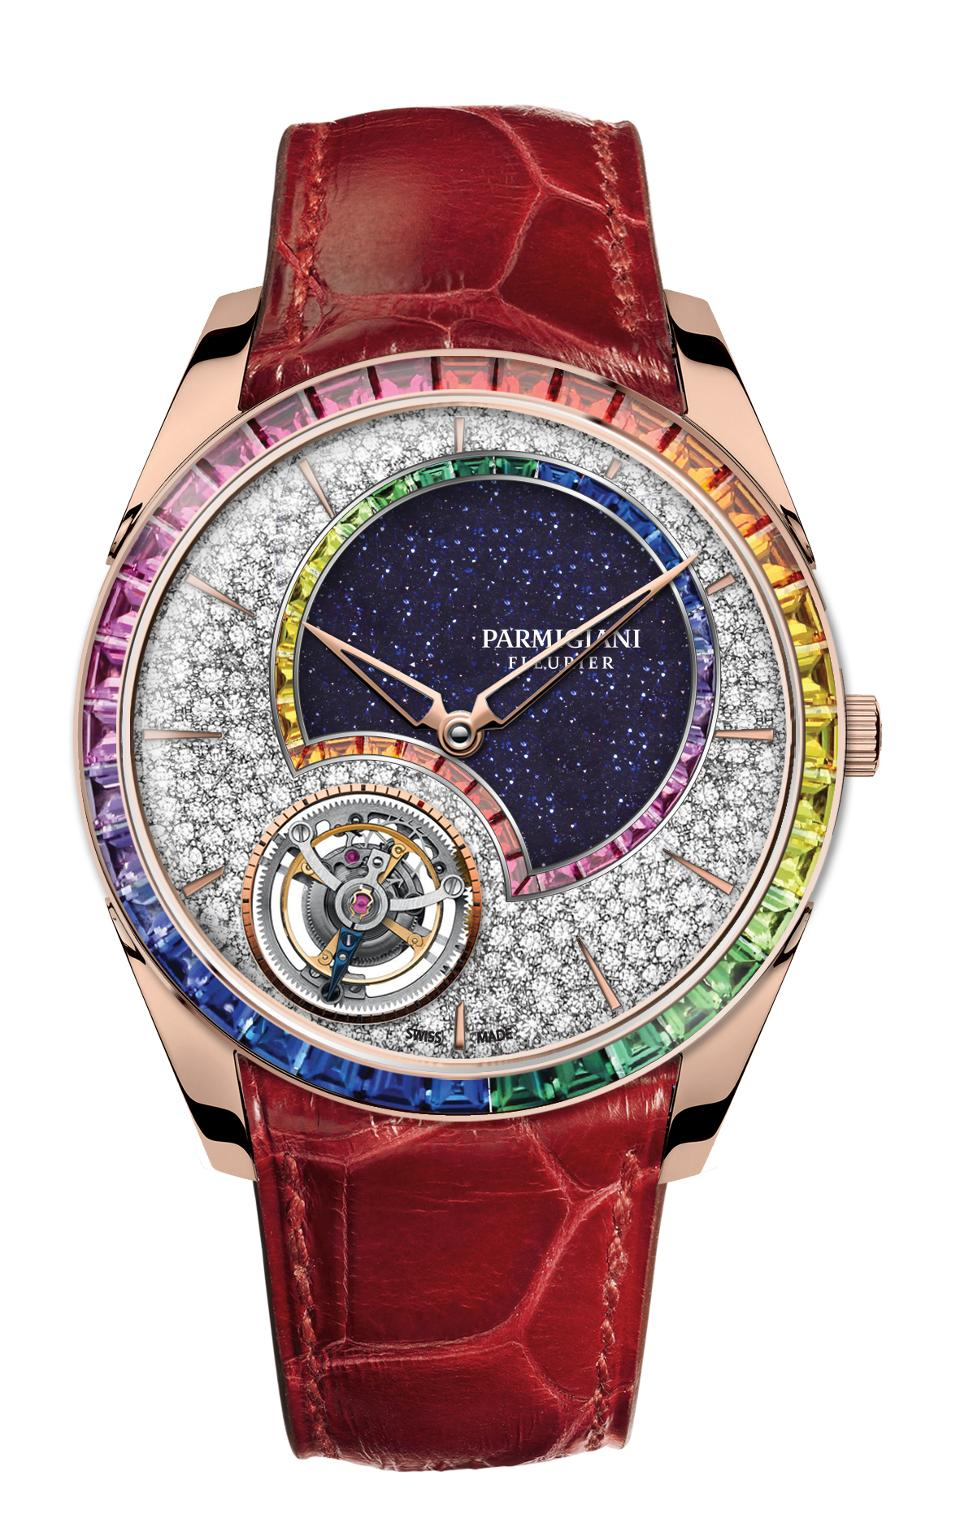 Parmigiani Fleurier Tonda 1950 Double Rainbow Flying Toubillon